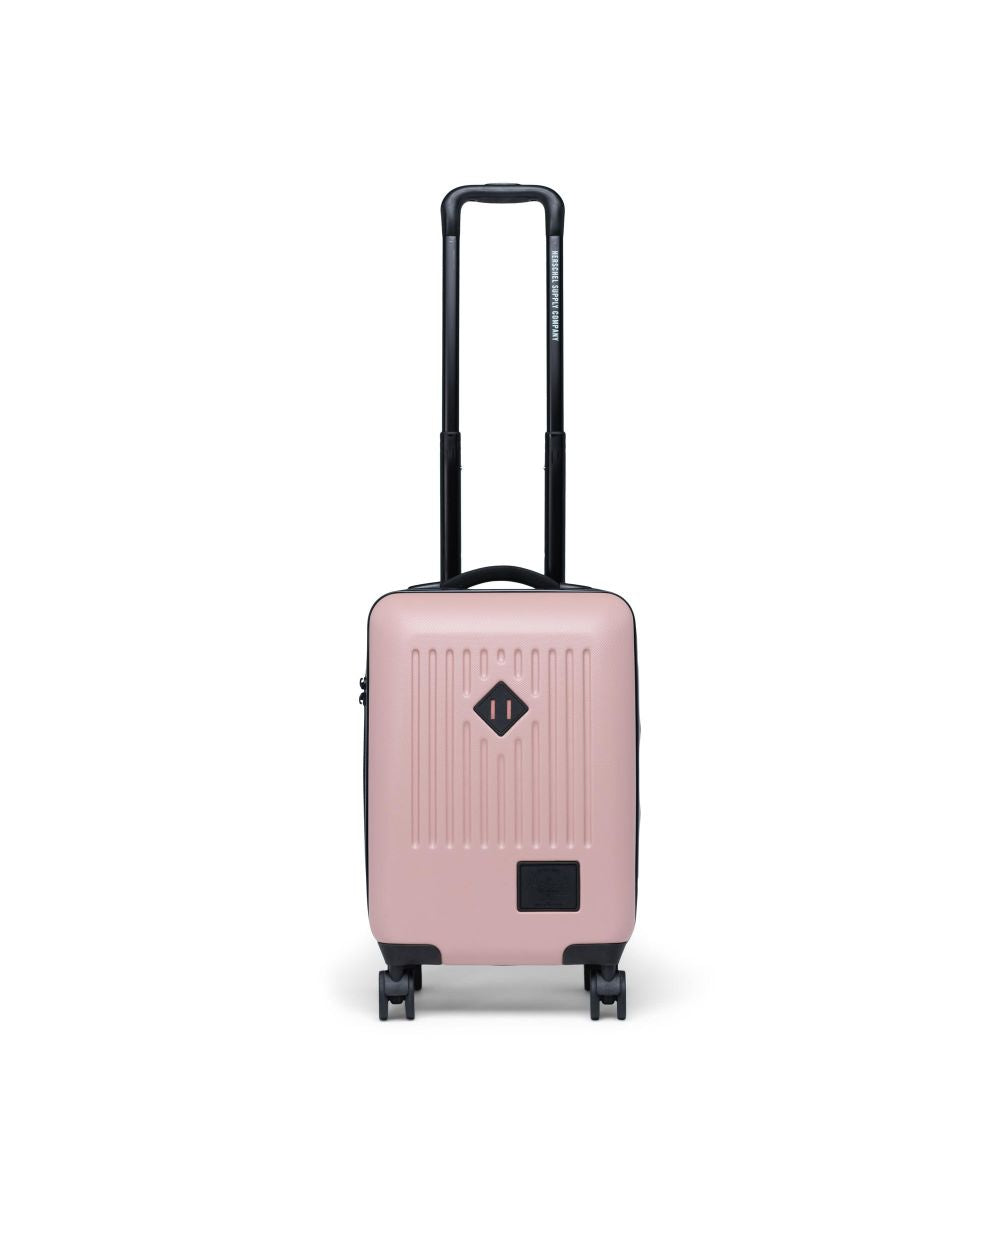 TRADE LUGGAGE CARRY ON - ASH ROSE/SILVERBIRCH